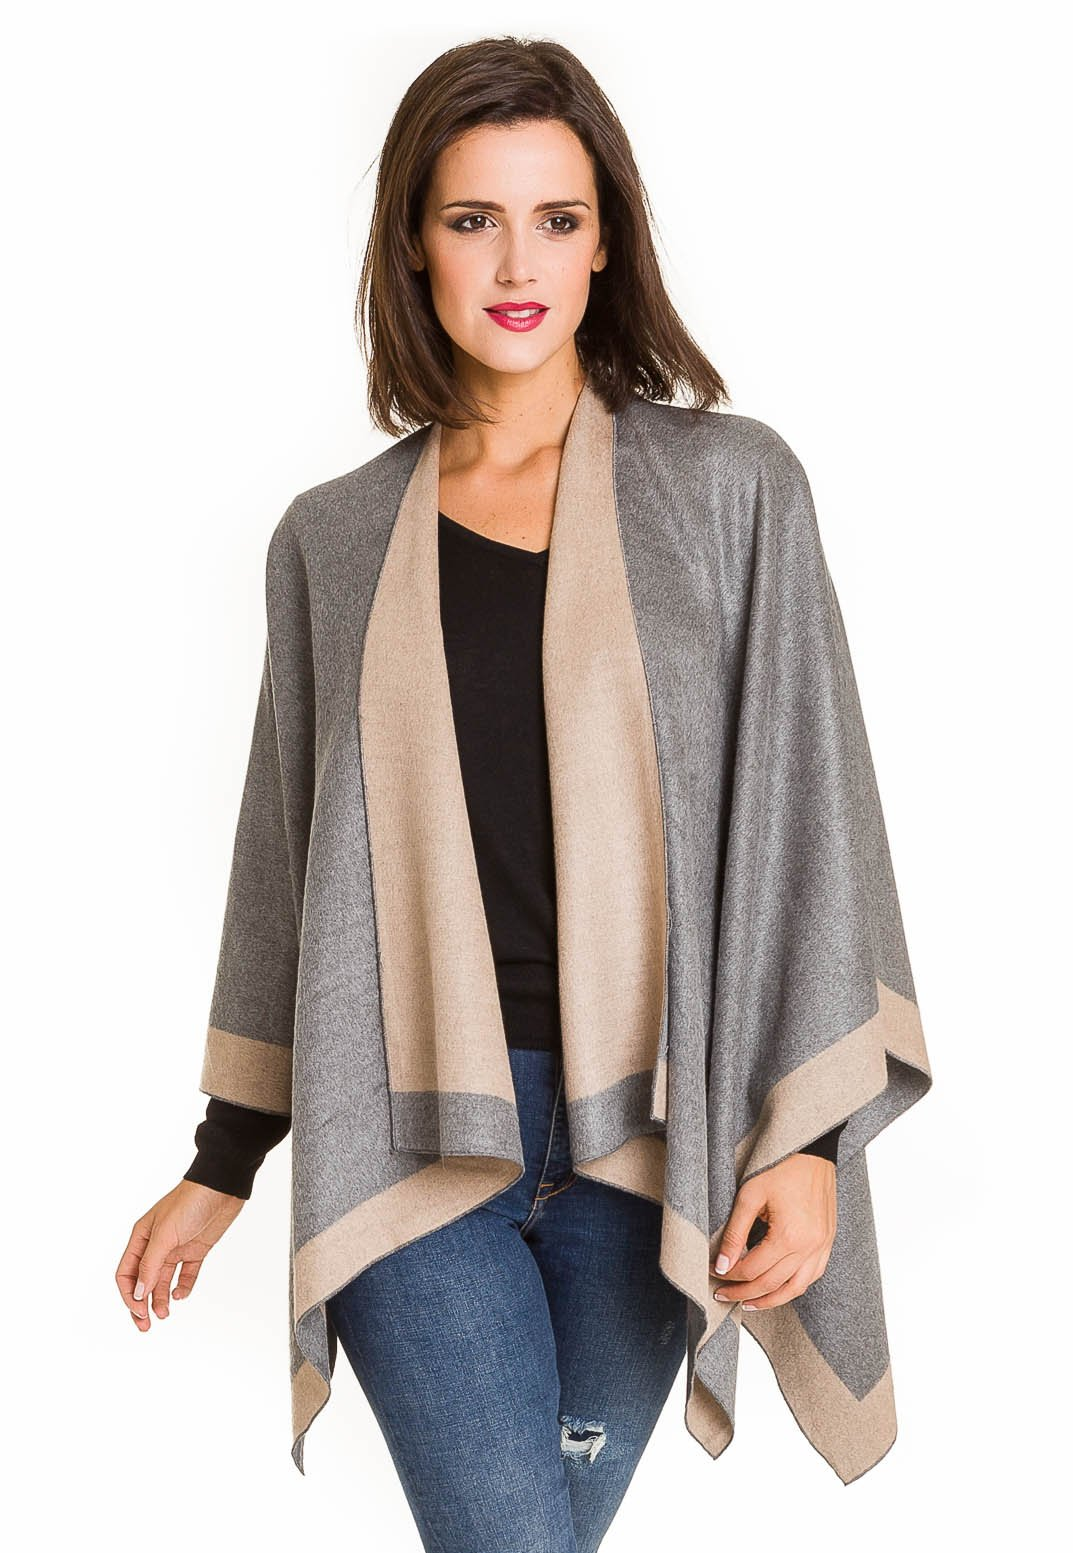 Cardigan Poncho Cape: Women Elegant Gray Beige Reversible Cardigan Shawl Wrap Sweater Coat for Winter (Light Gray Beige) by MELIFLUOS DESIGNED IN SPAIN (Image #3)